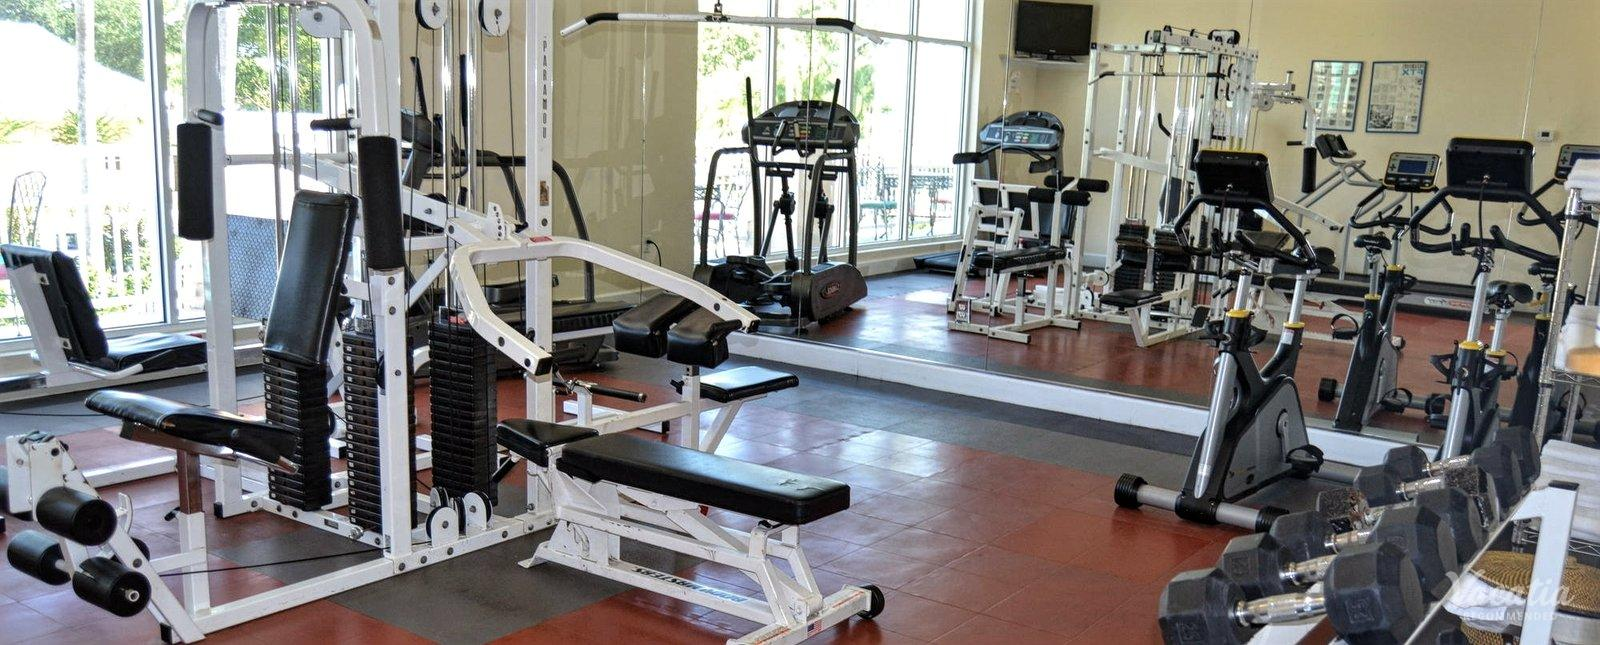 Cypress Pointe Resort Fitness Center